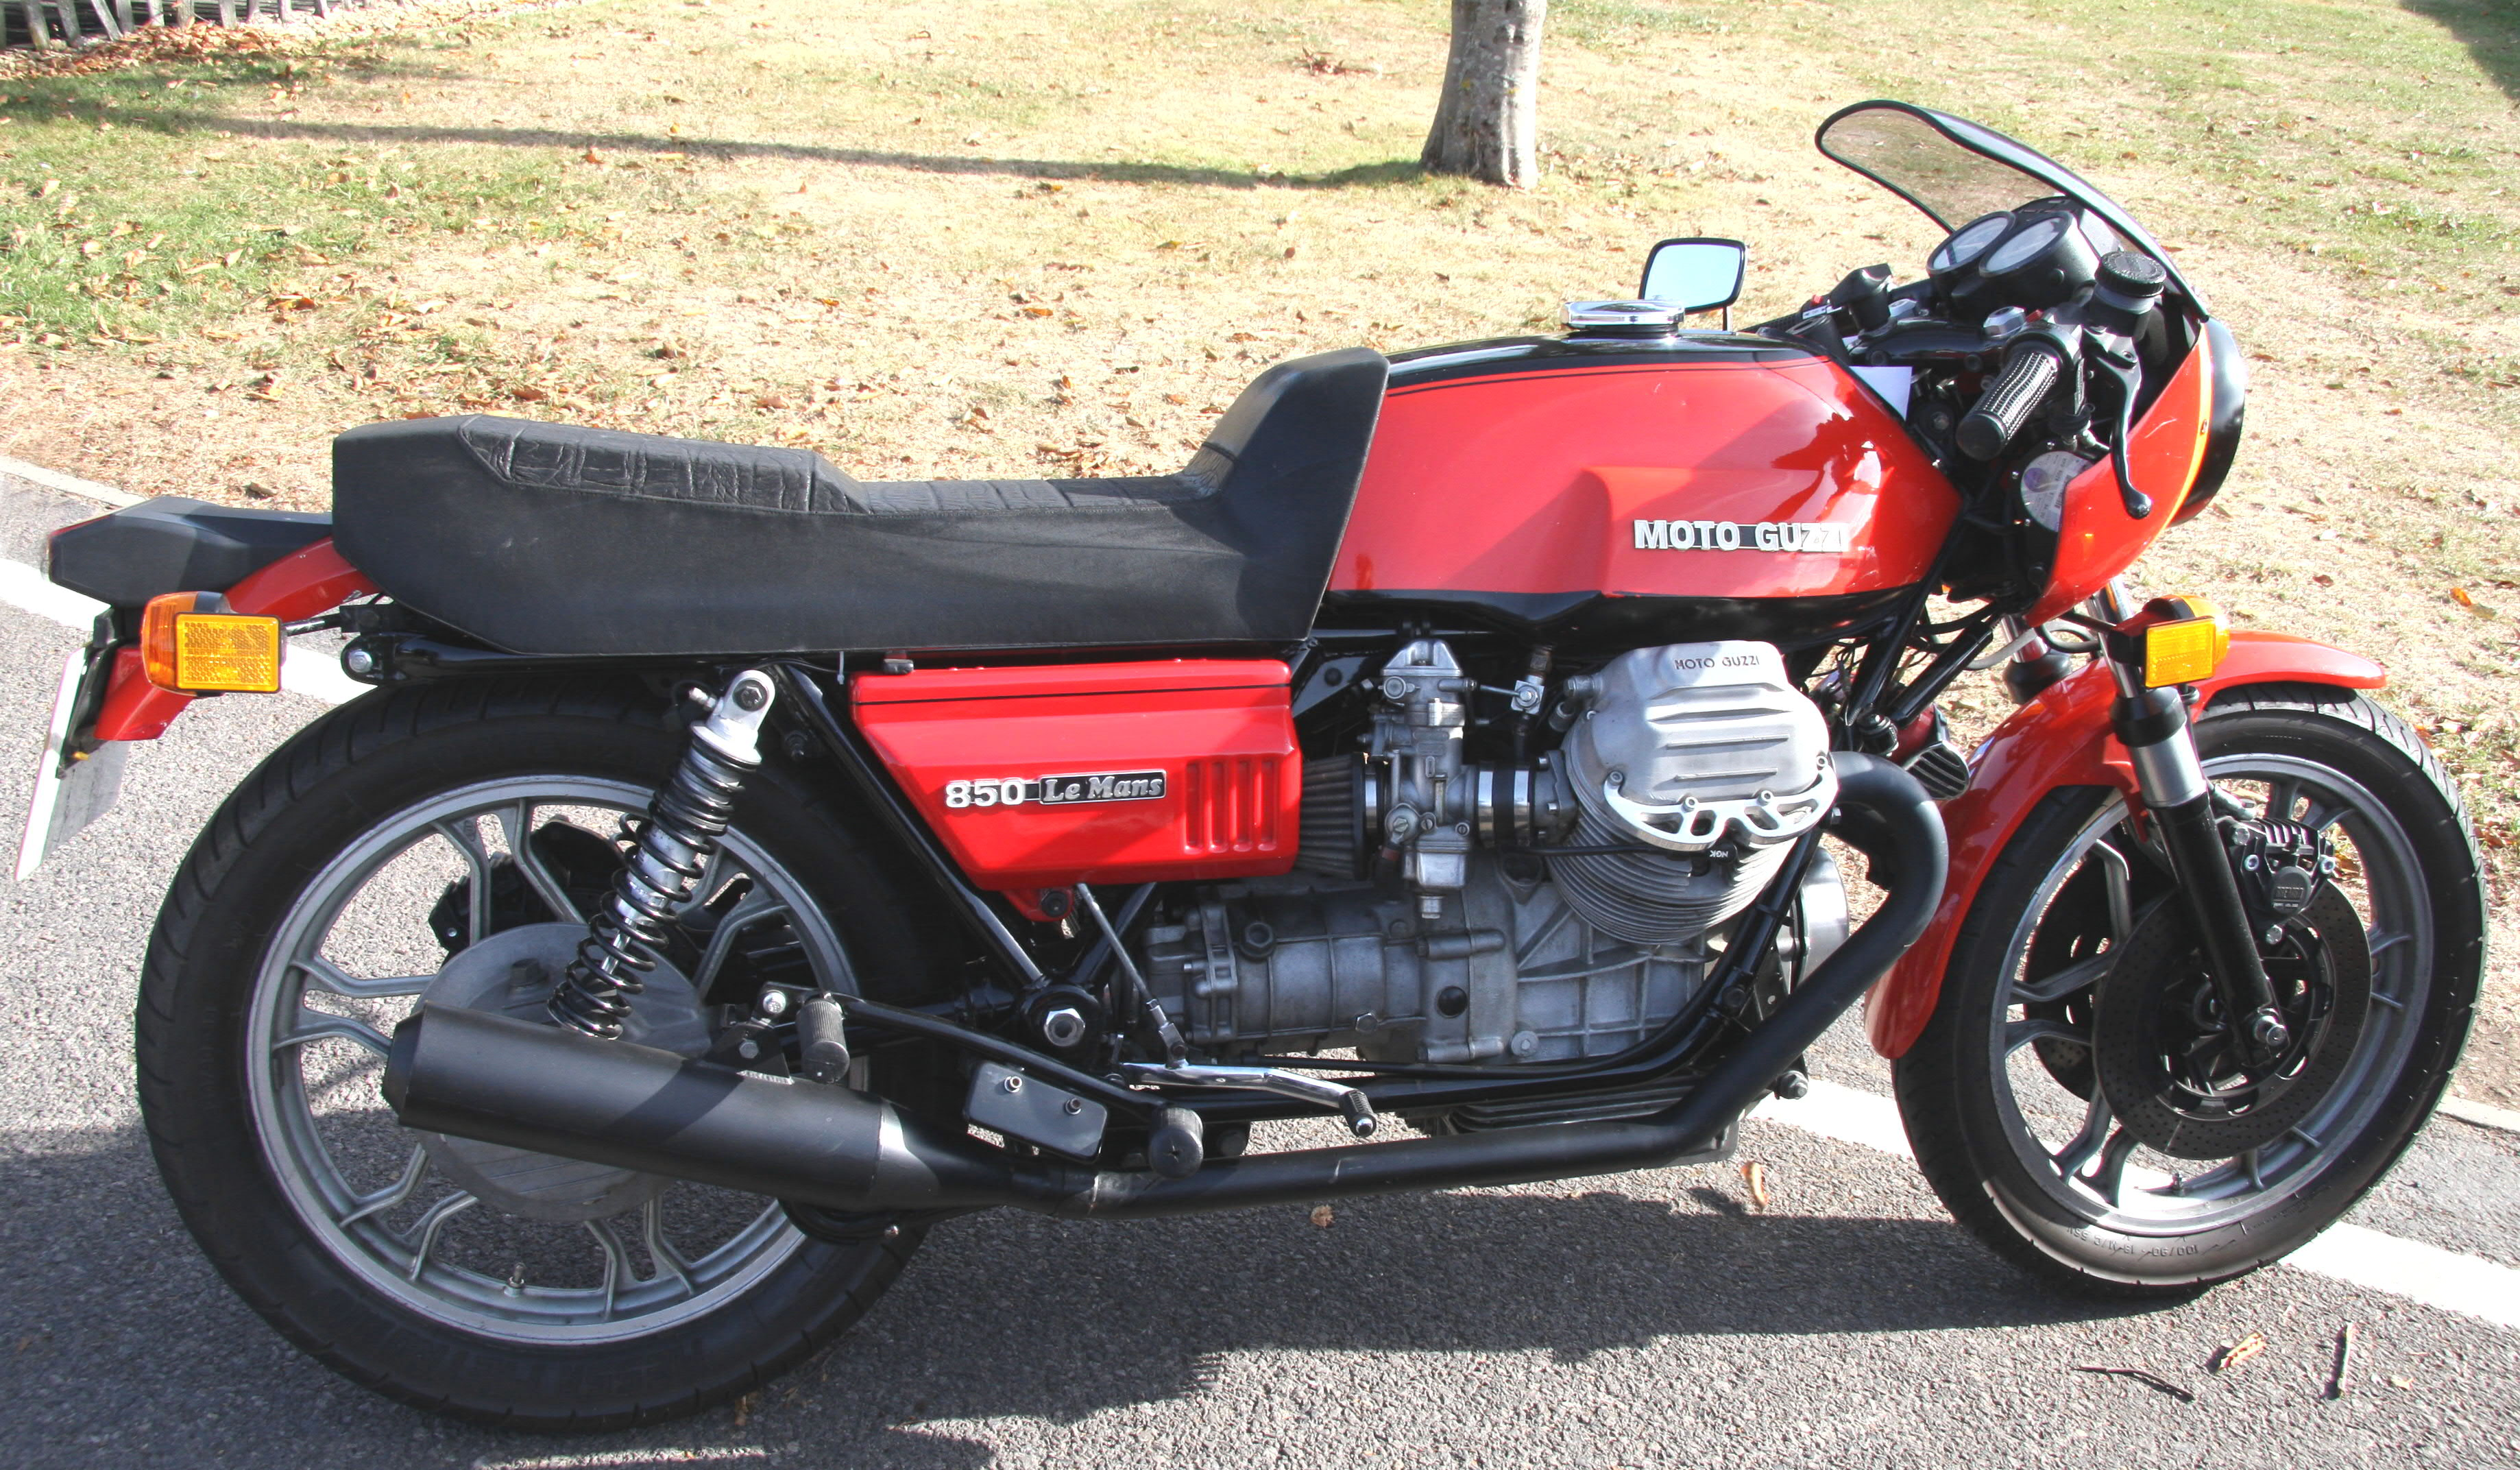 BMW R65 (reduced effect) 1990 images #10682